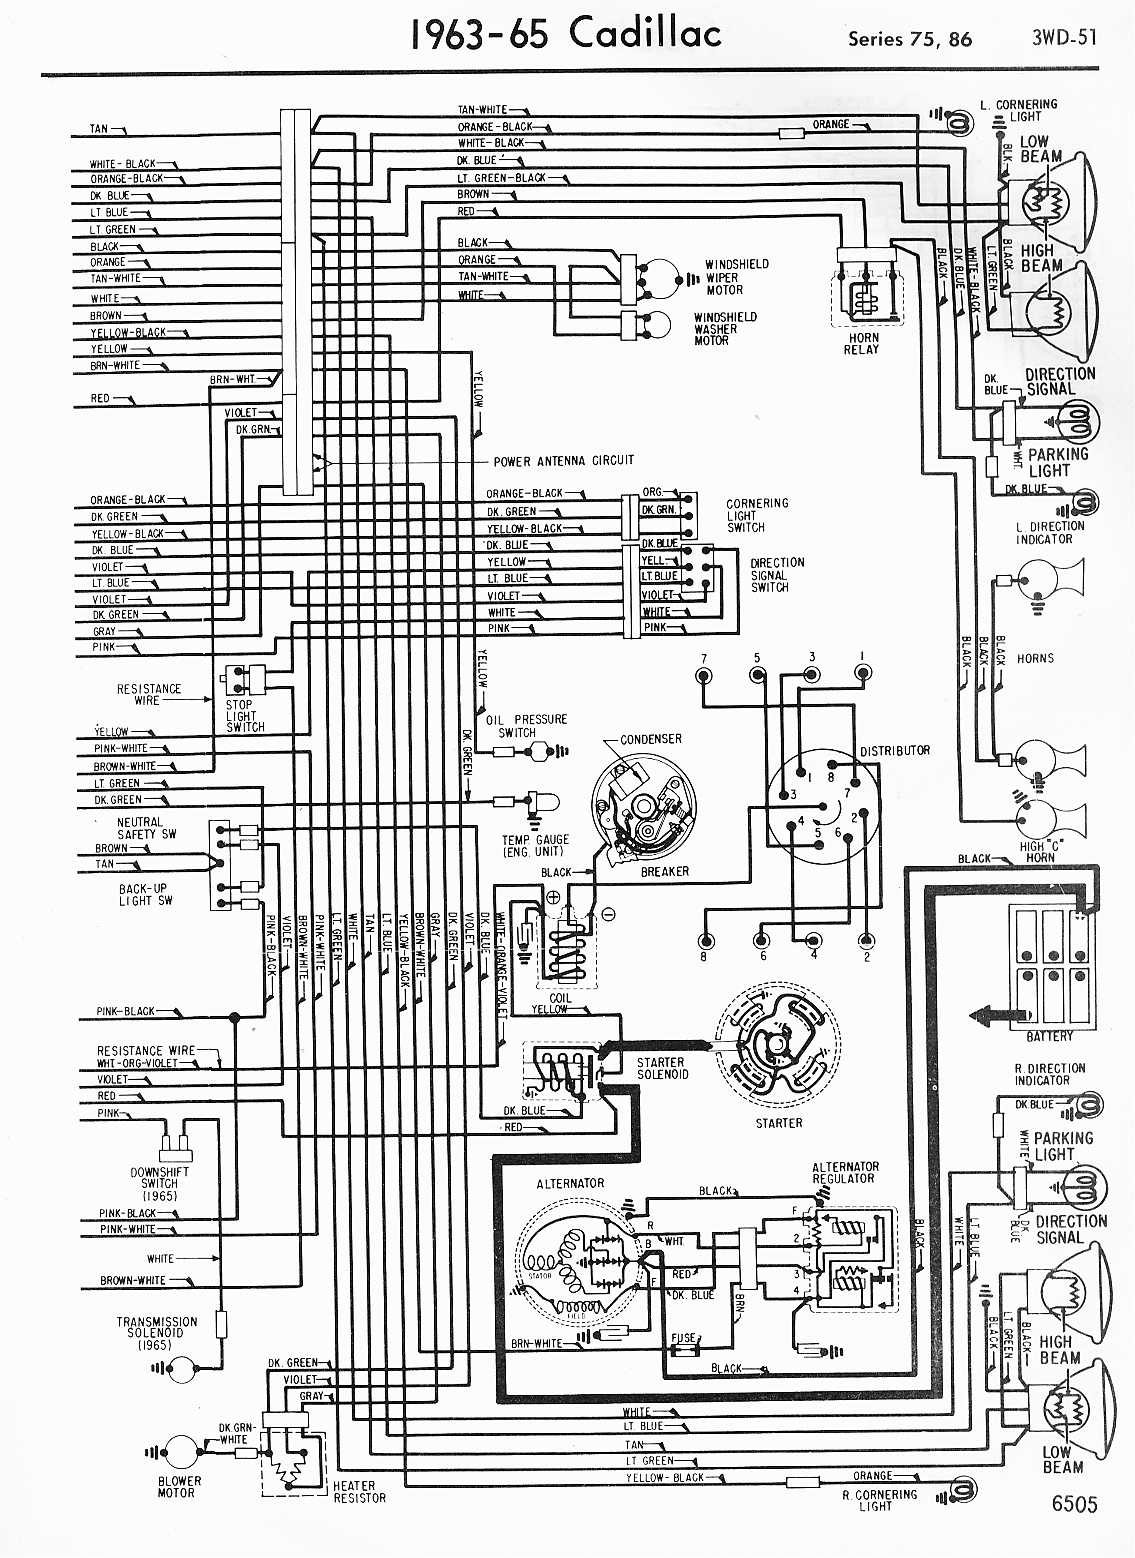 2012 cadillac wiring schematics 1996 cadillac deville wiring schematics i have a 1965 cadillac convertible with power windows. the ...